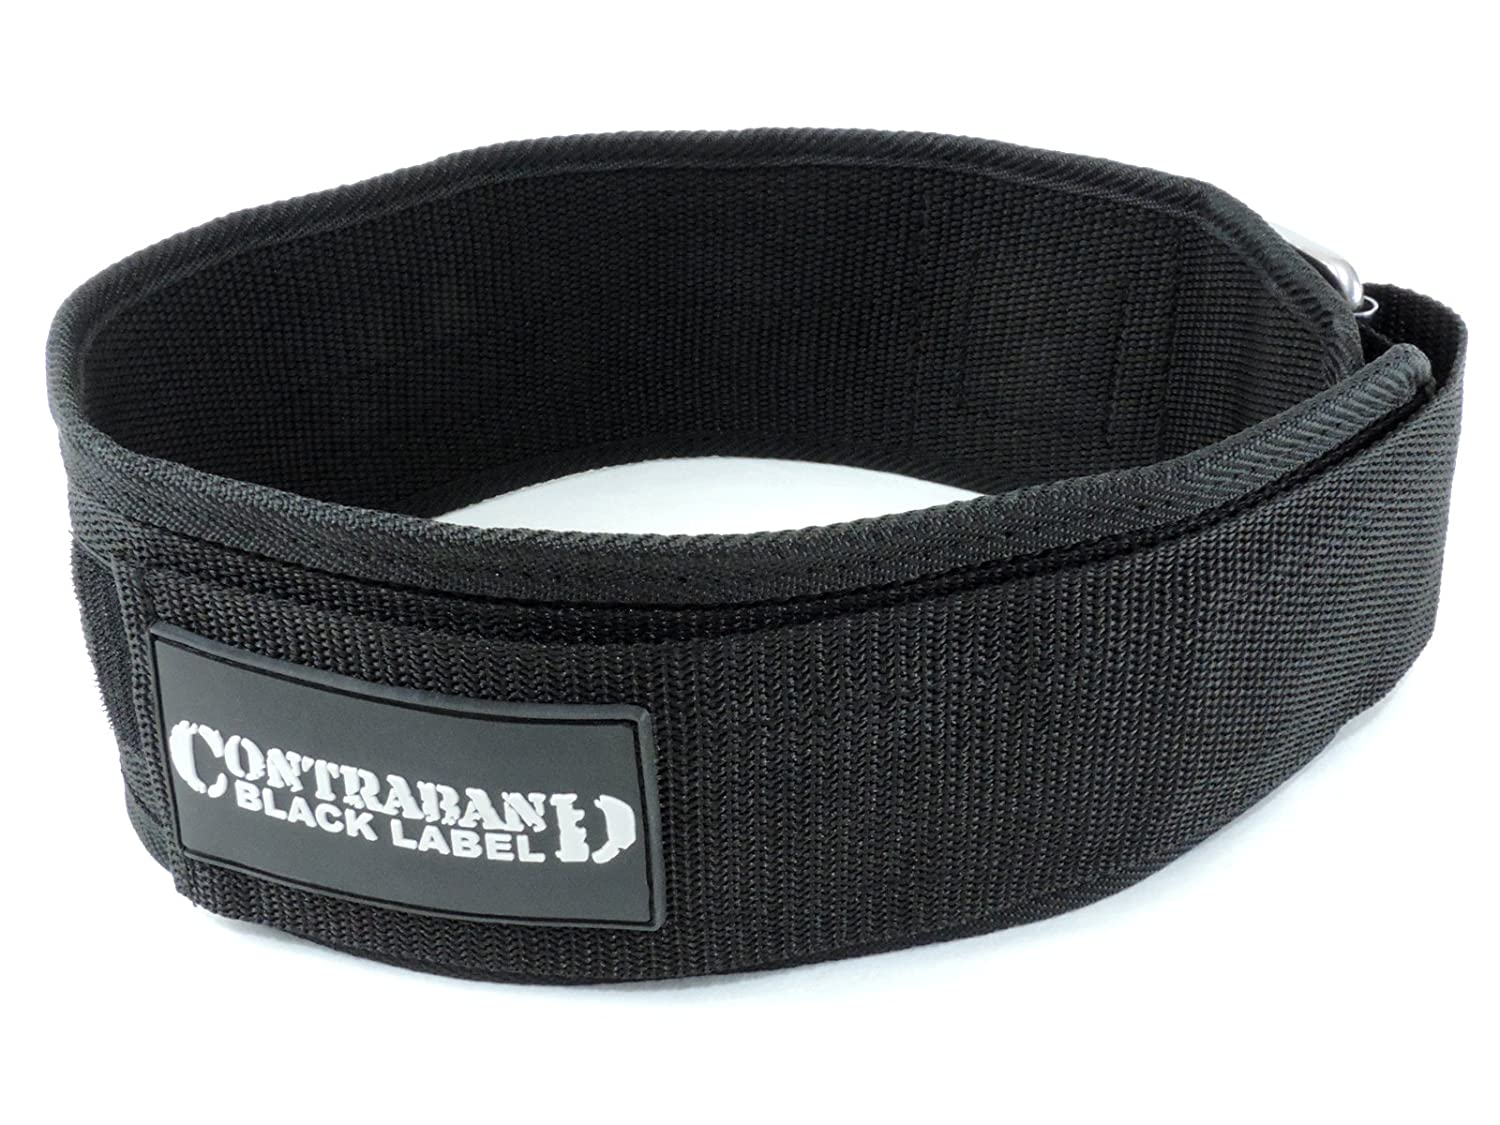 Contraband Black Label 4010 4inch Nylon Weight Lifting Belt w Hook Loop – Perfect Heavy Duty Back Support for Weightlifting Bodybuilding Powerlifting – Men Women